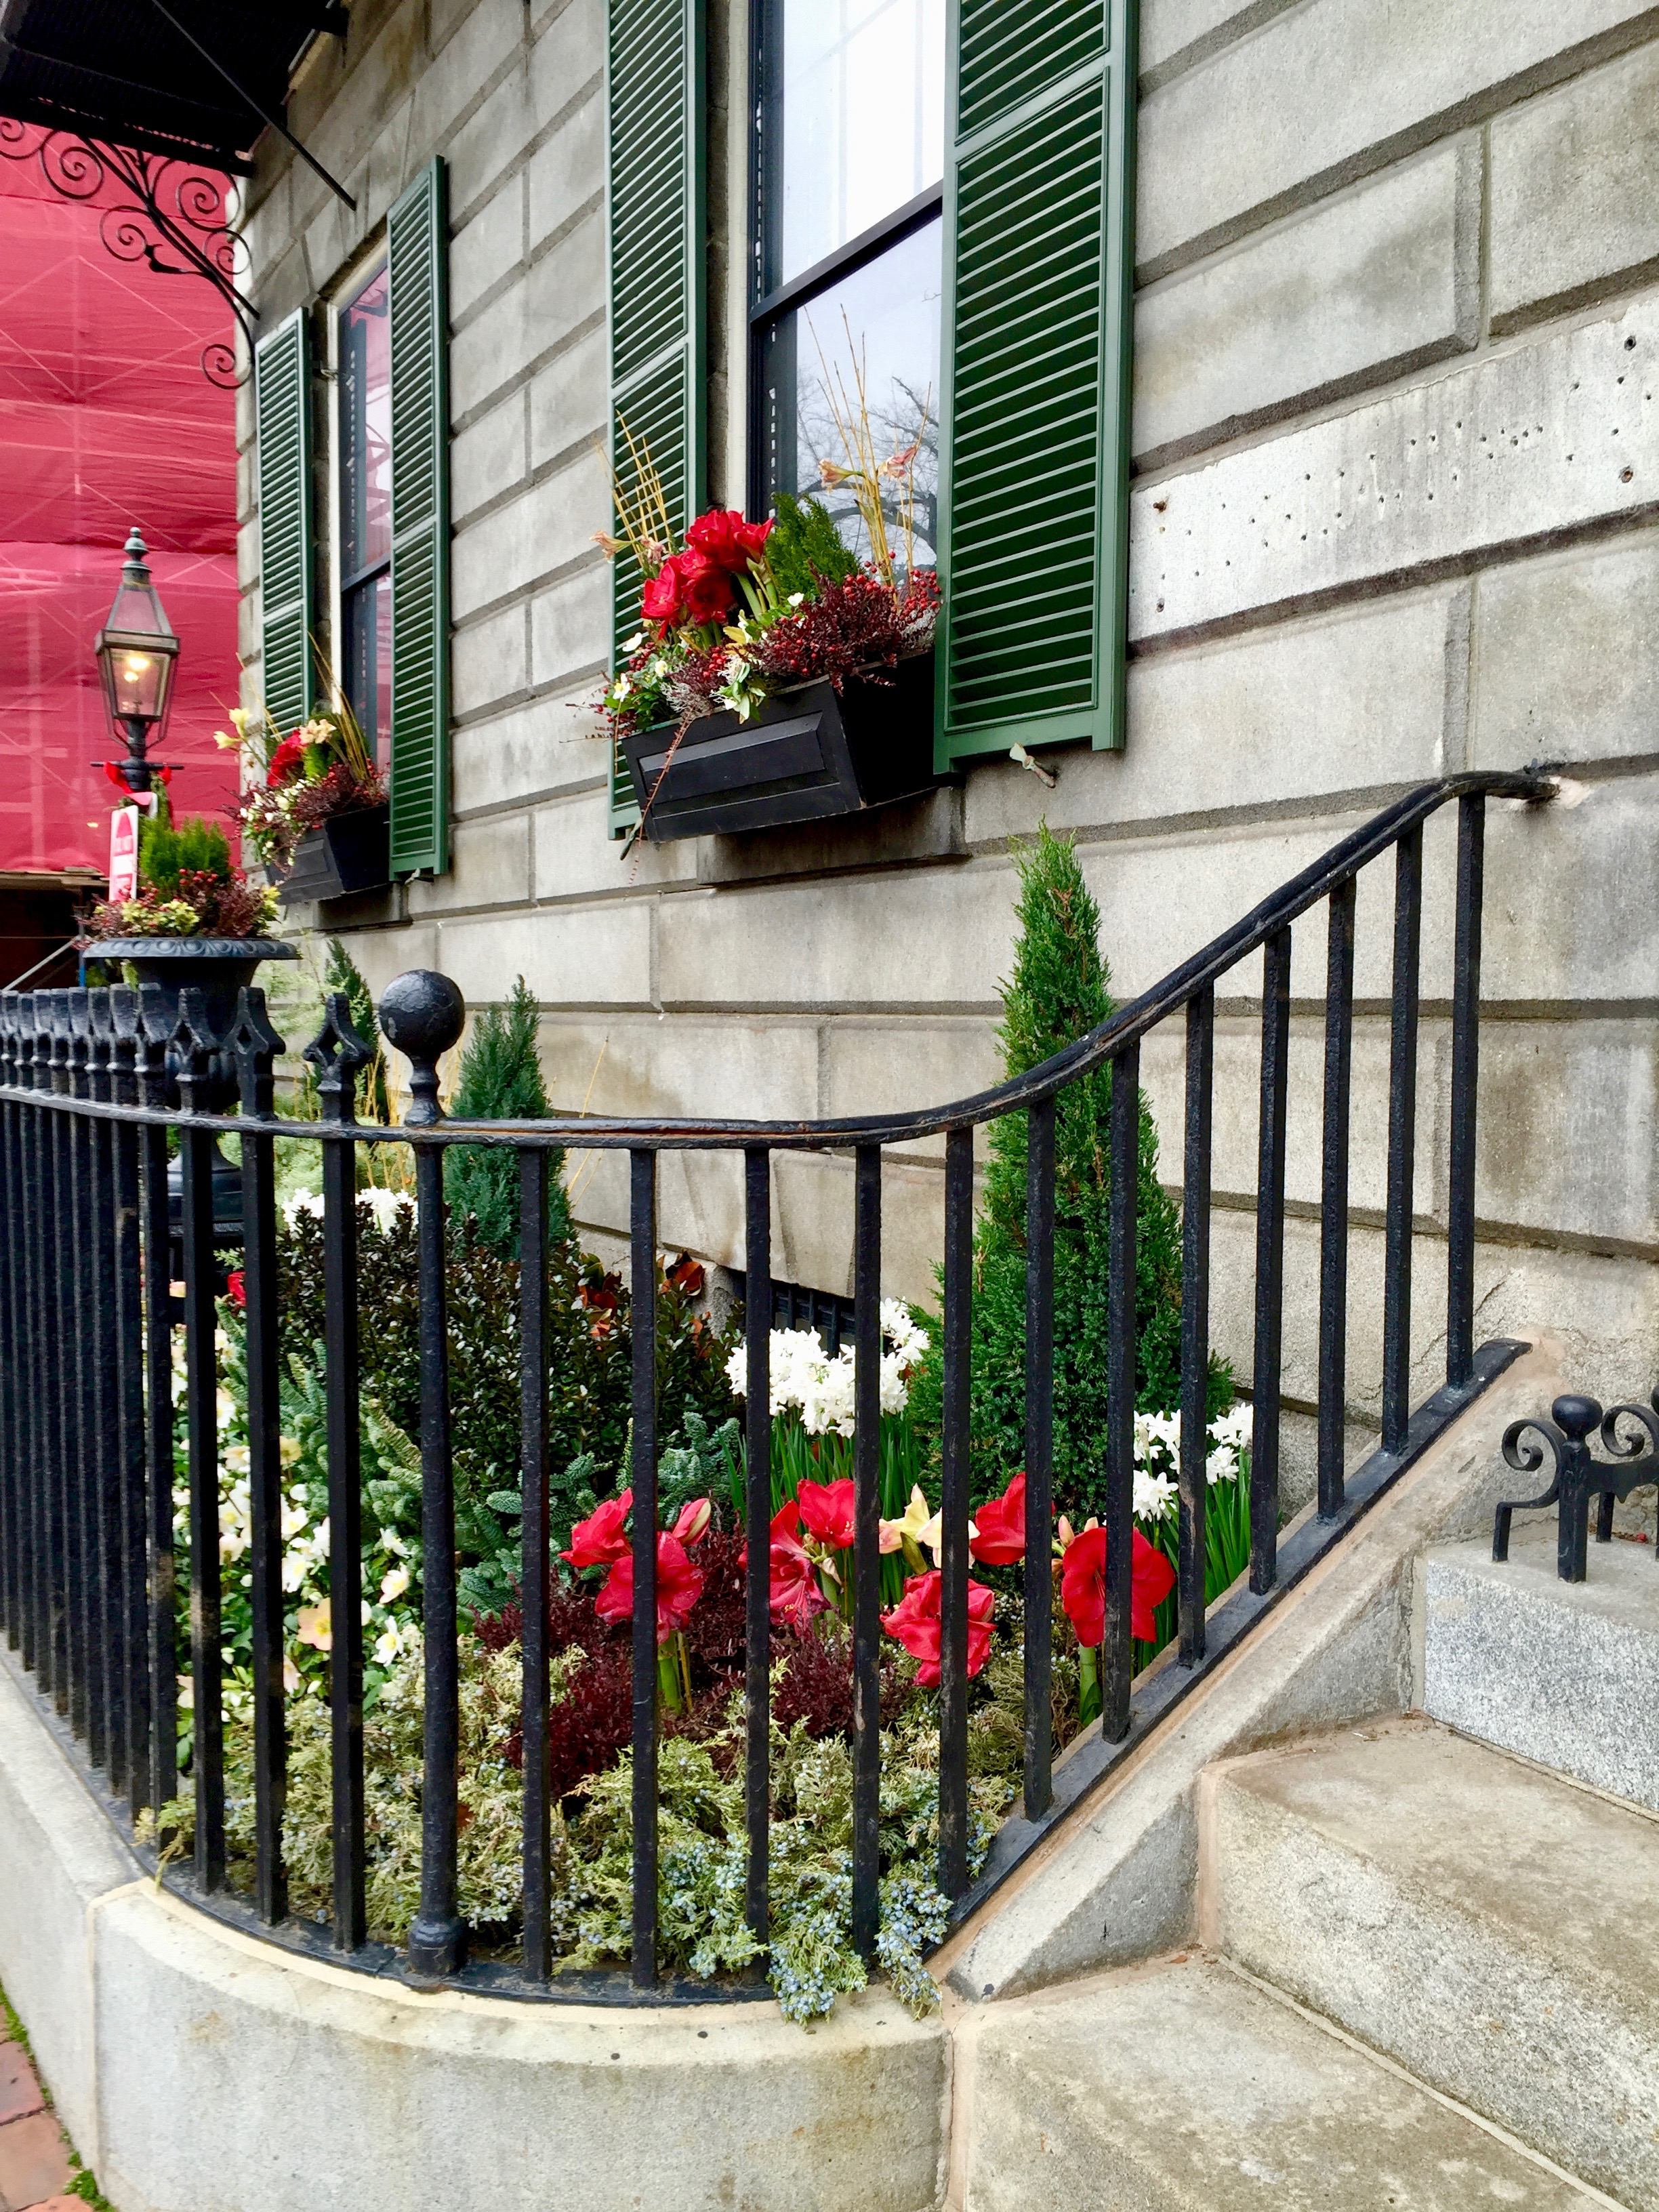 Beacon Hill Christmas Decorations and window boxes